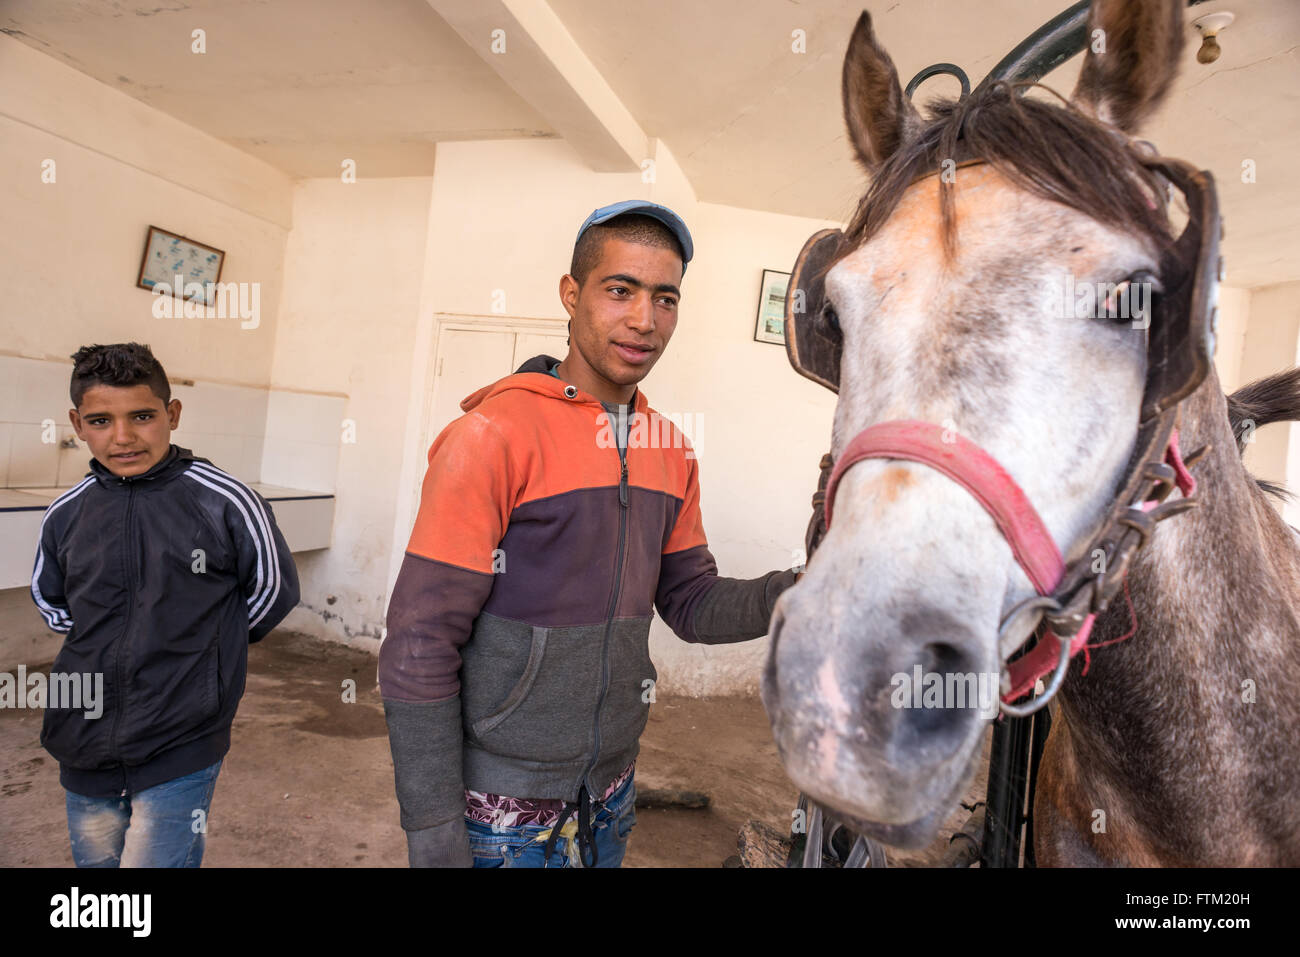 A young man with his horse at the SPANA veterinary centre in Marrakech. - Stock Image